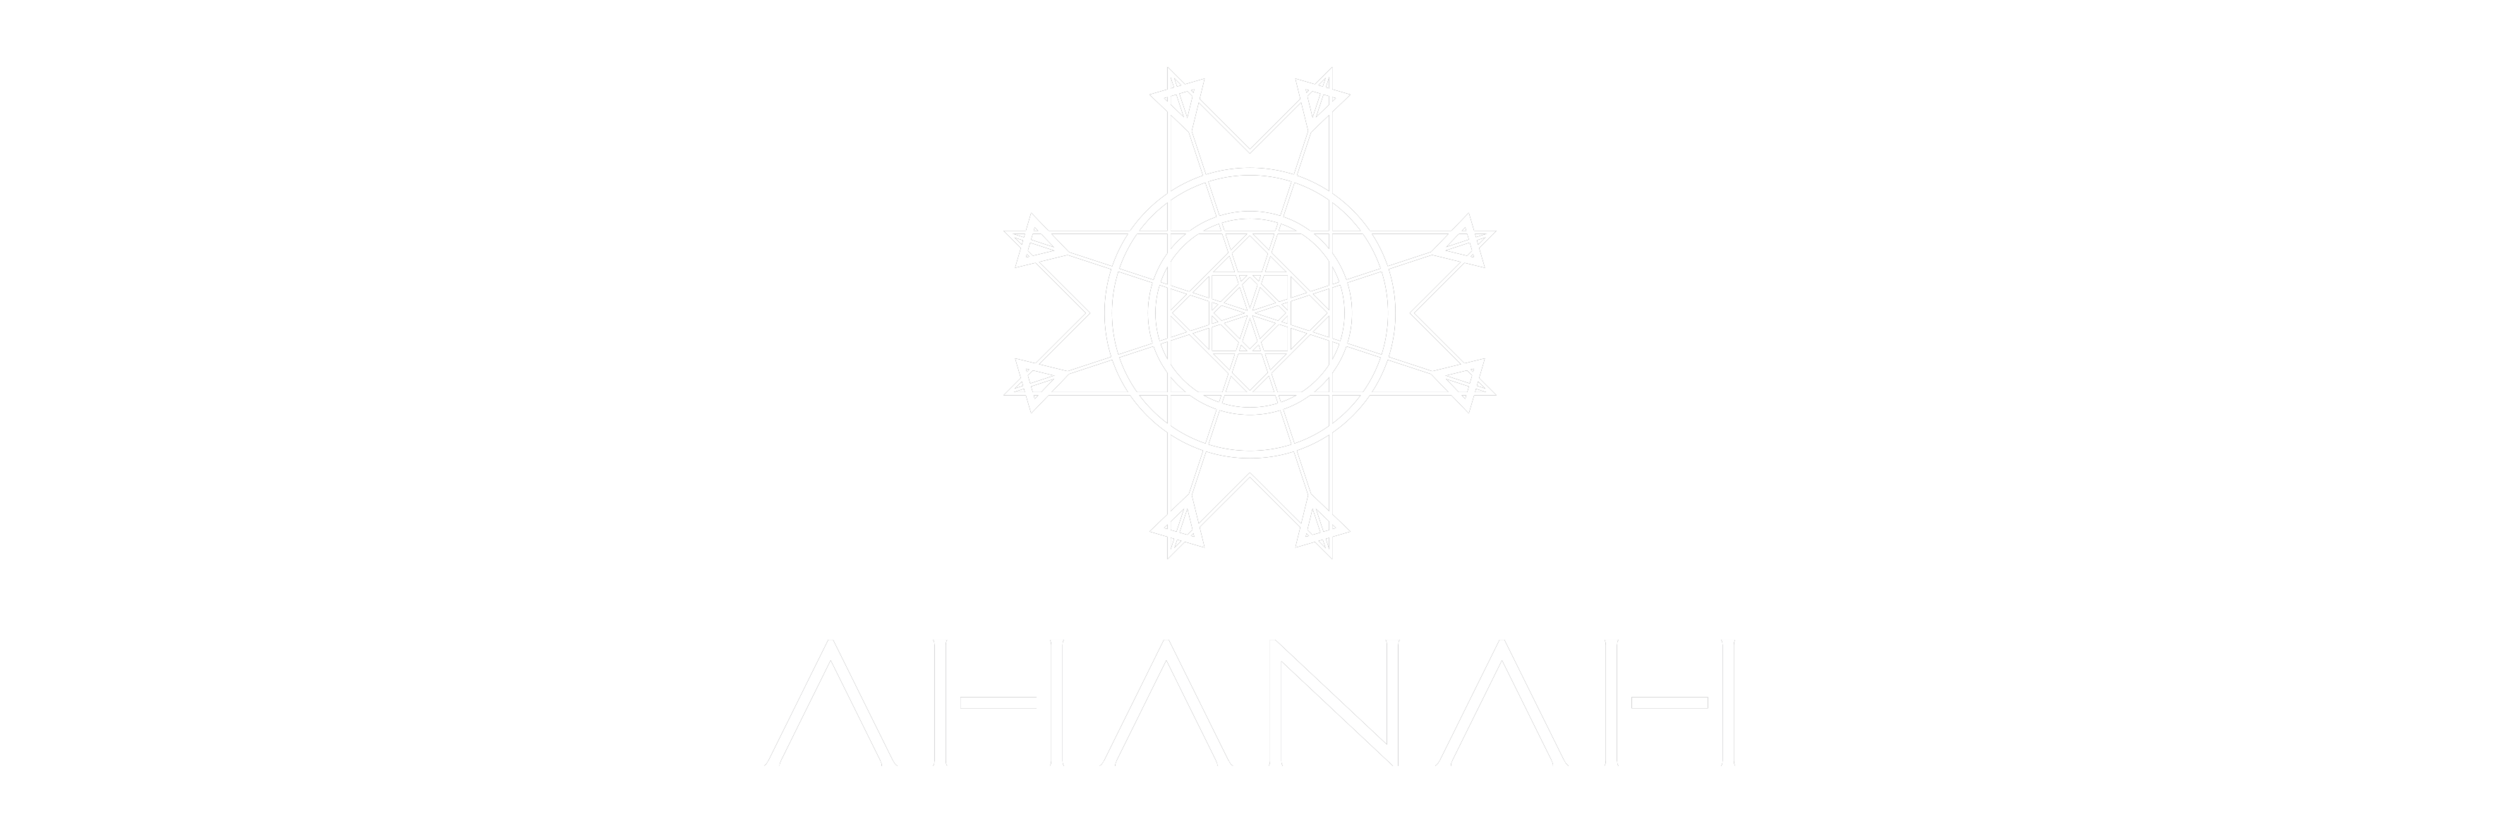 Ahanah logo_white long.png